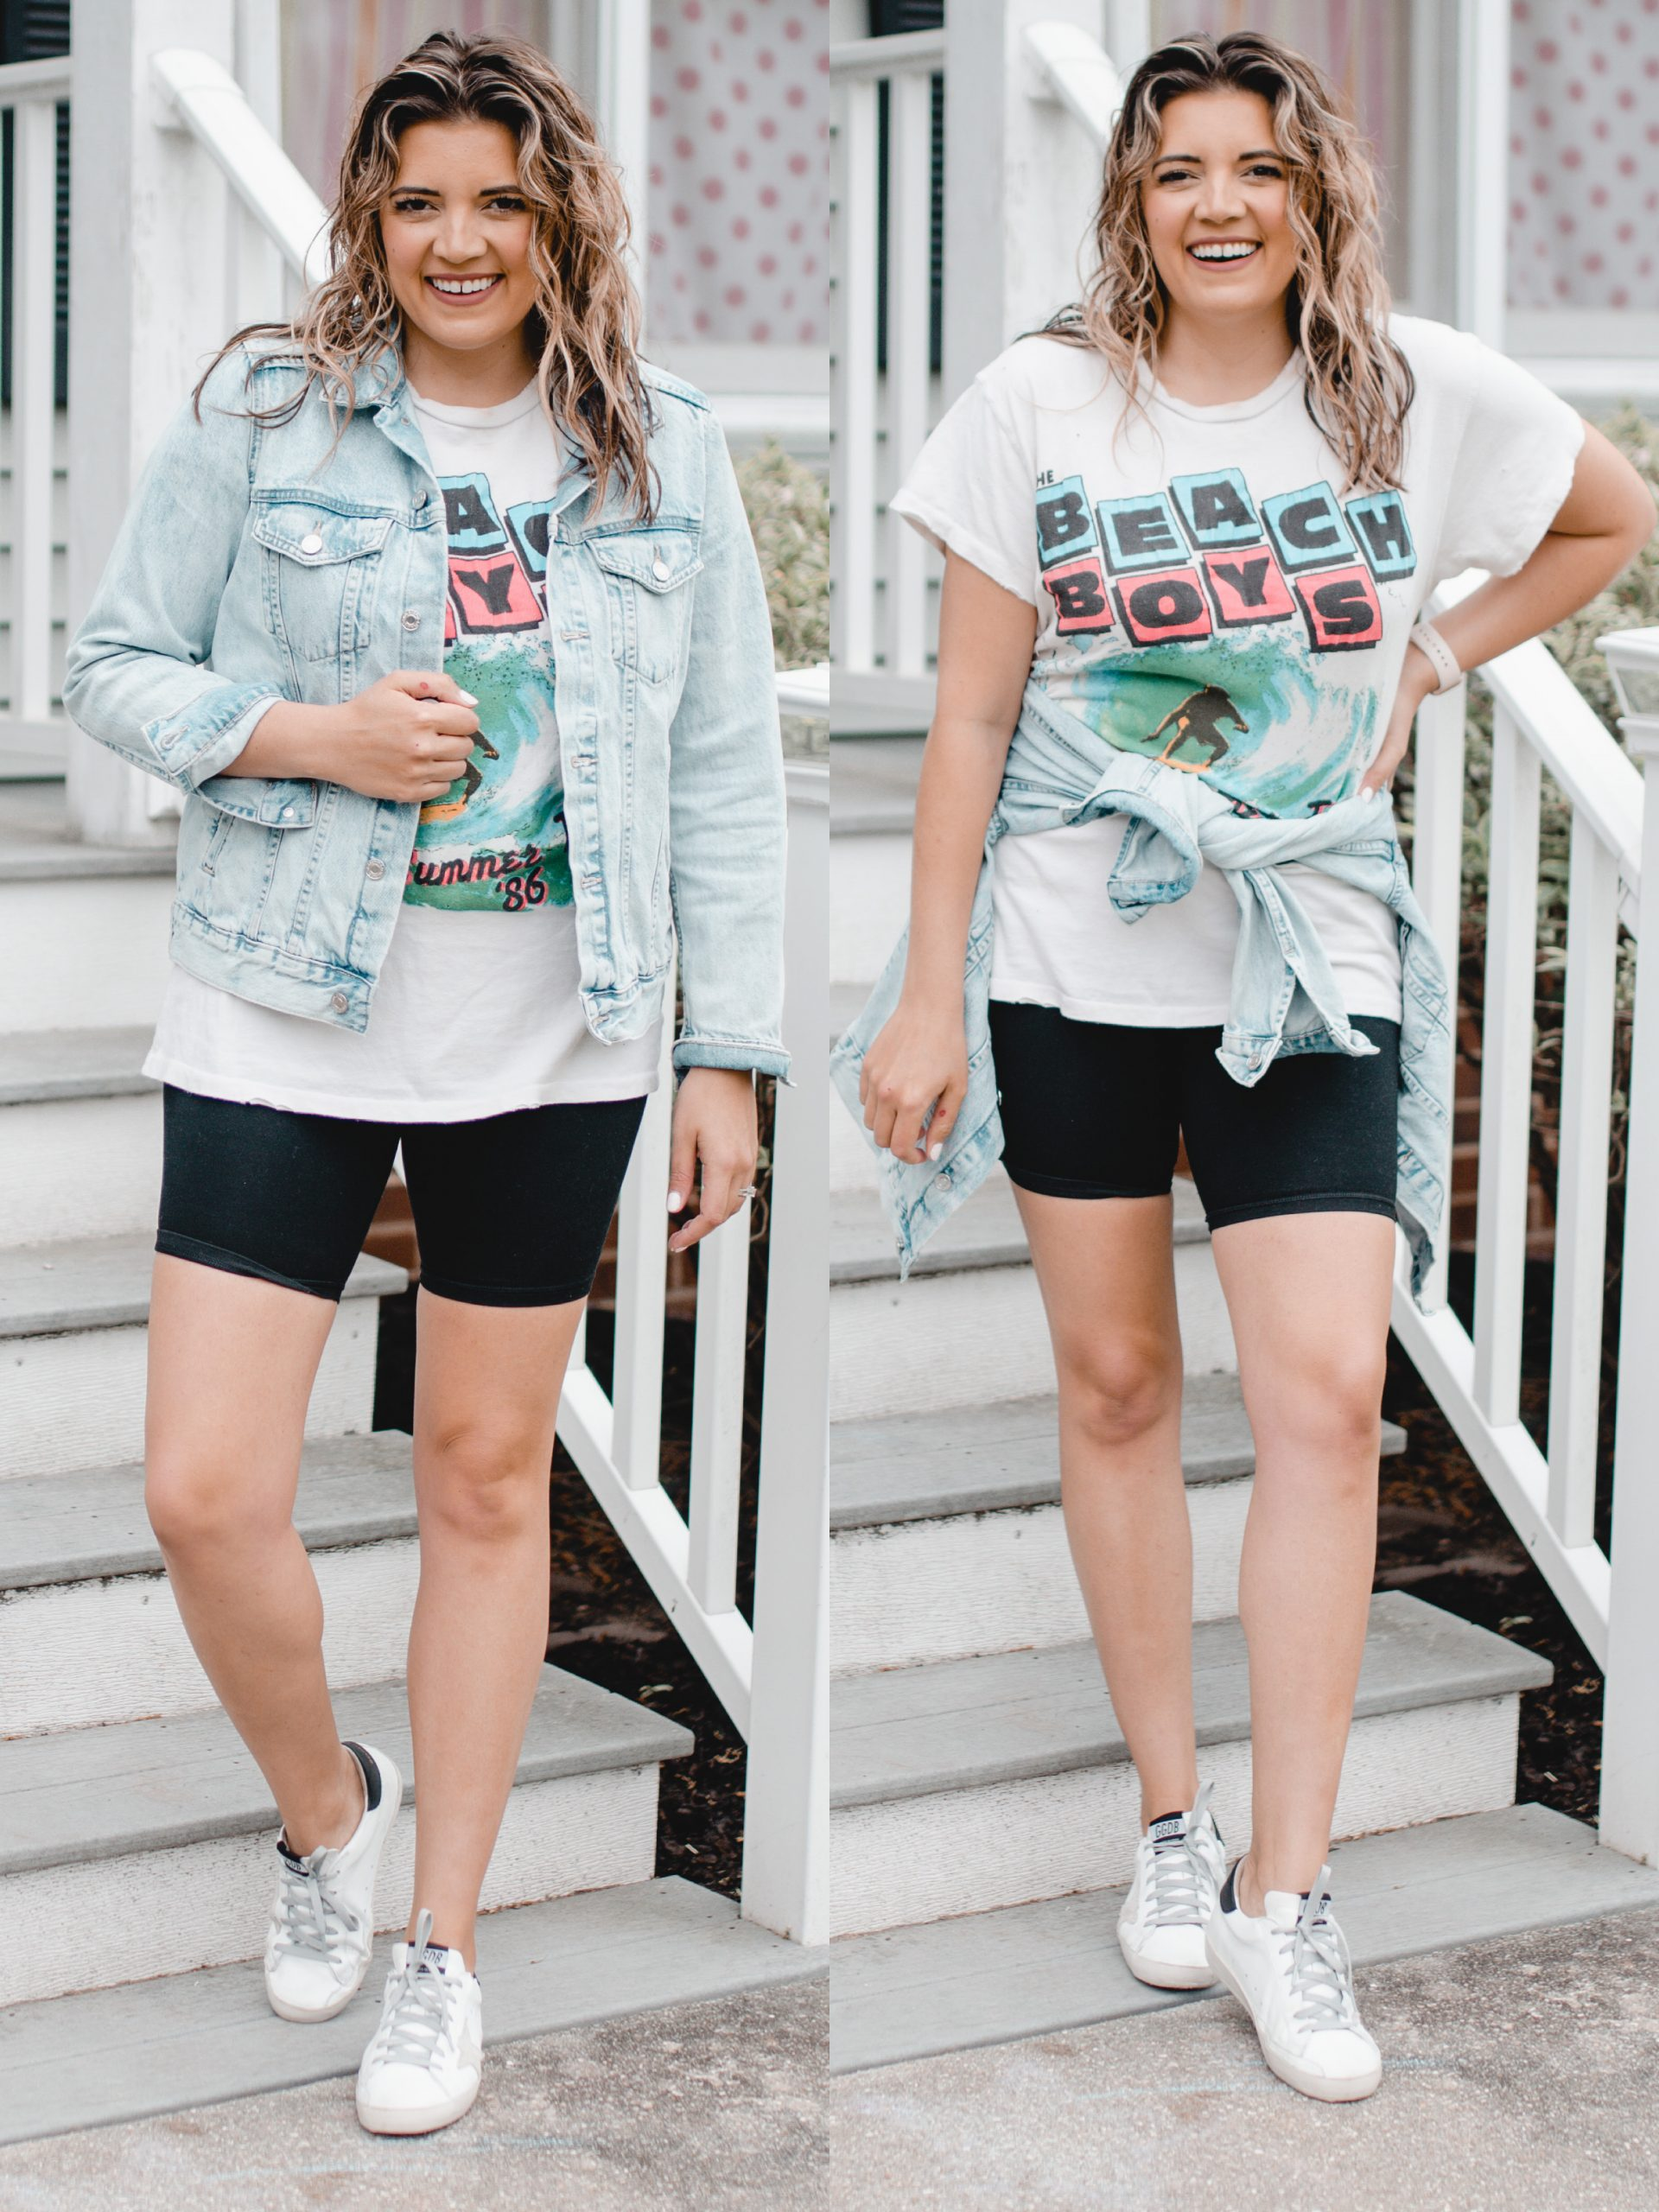 Virginia blogger, Lauren Dix, shares five white sneakers outfit for spring and summer!